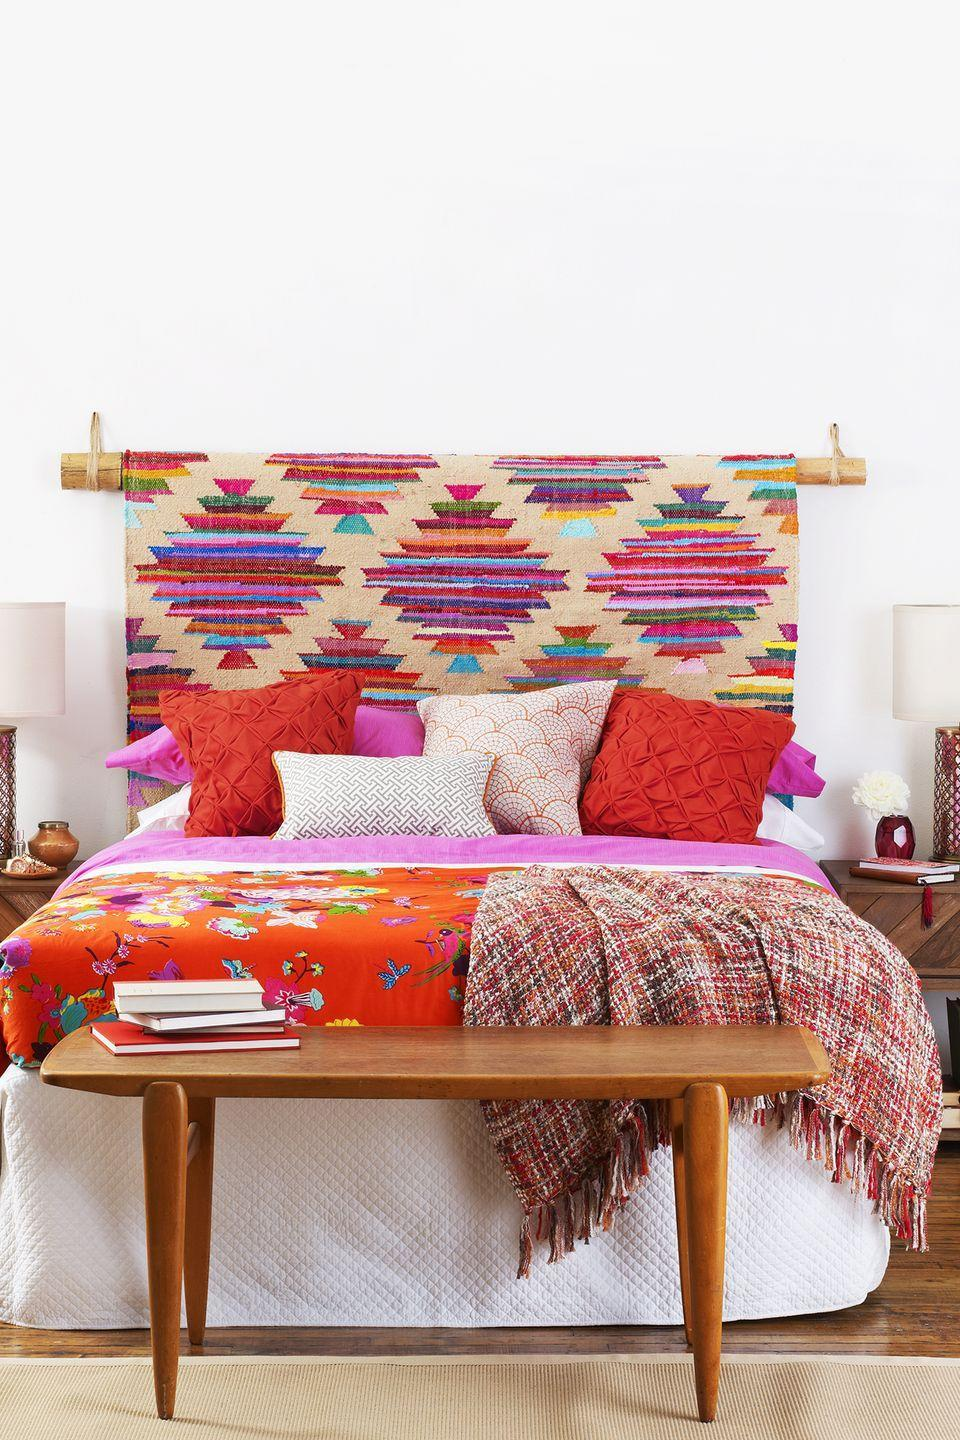 <p>Hang a patterned rug or tapestry on a sturdy bamboo pole for a customizable backdrop. Then identify a color to use as an accent throughout the rest of your space. </p>